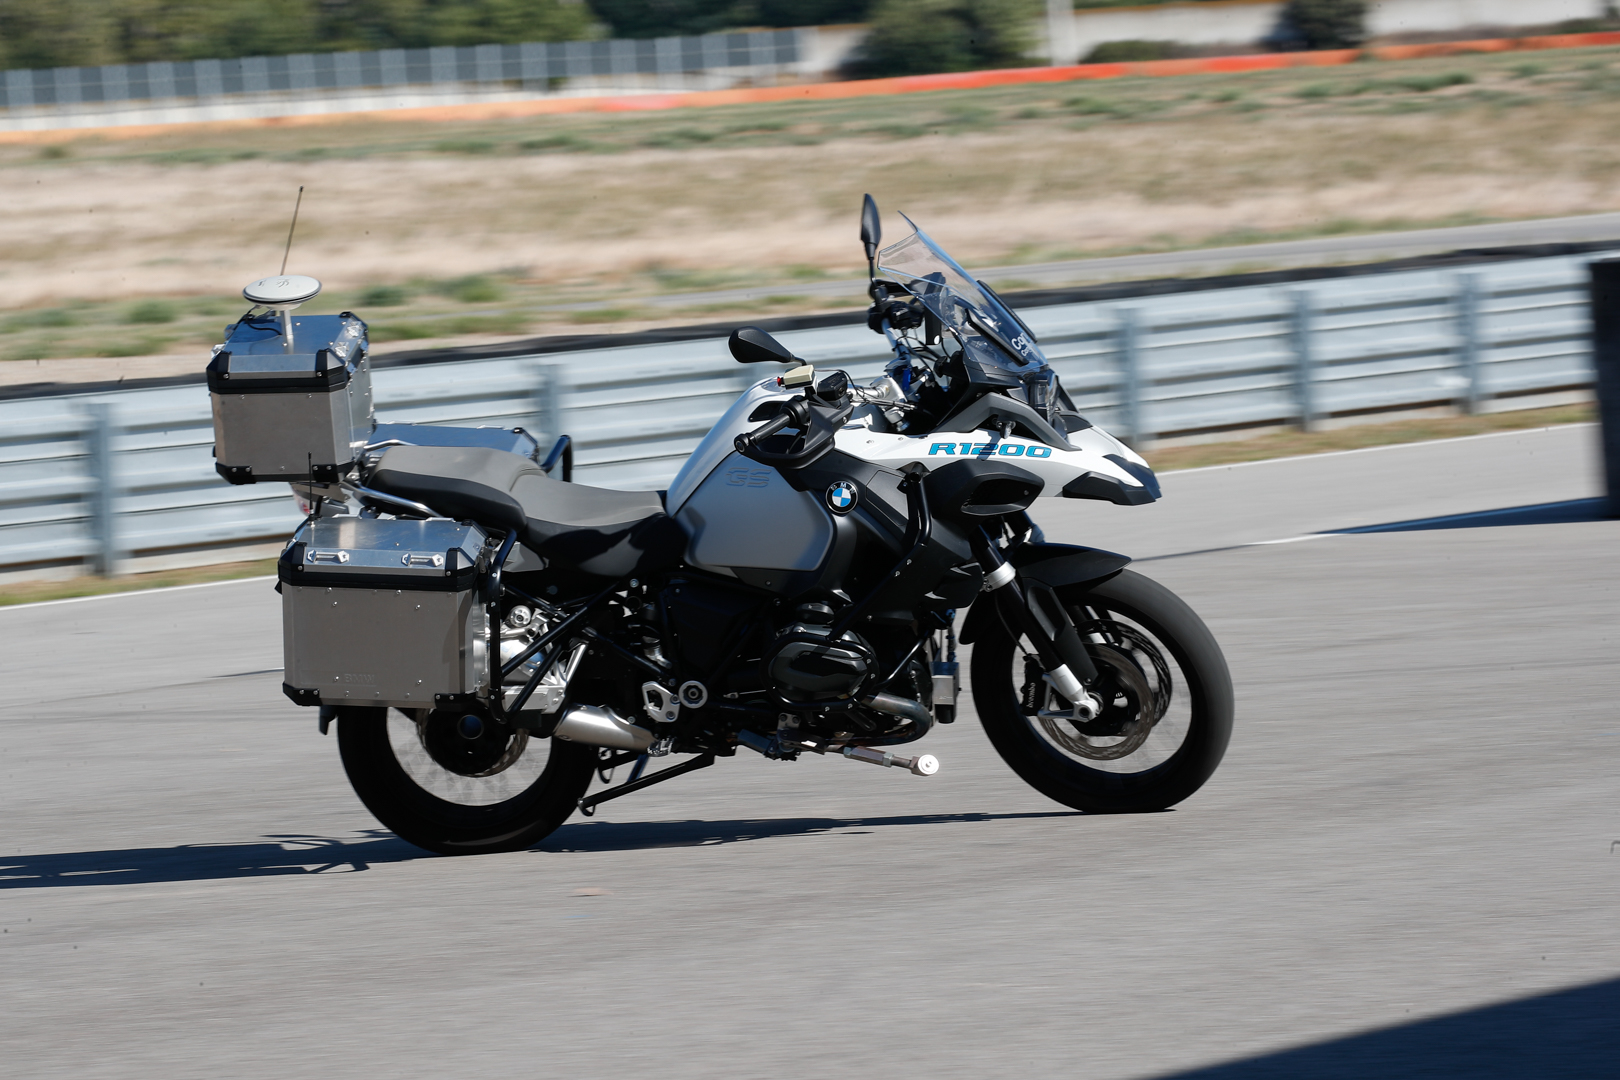 [H]ardOCP: BMW Shows Off Self Driving Motorcycle